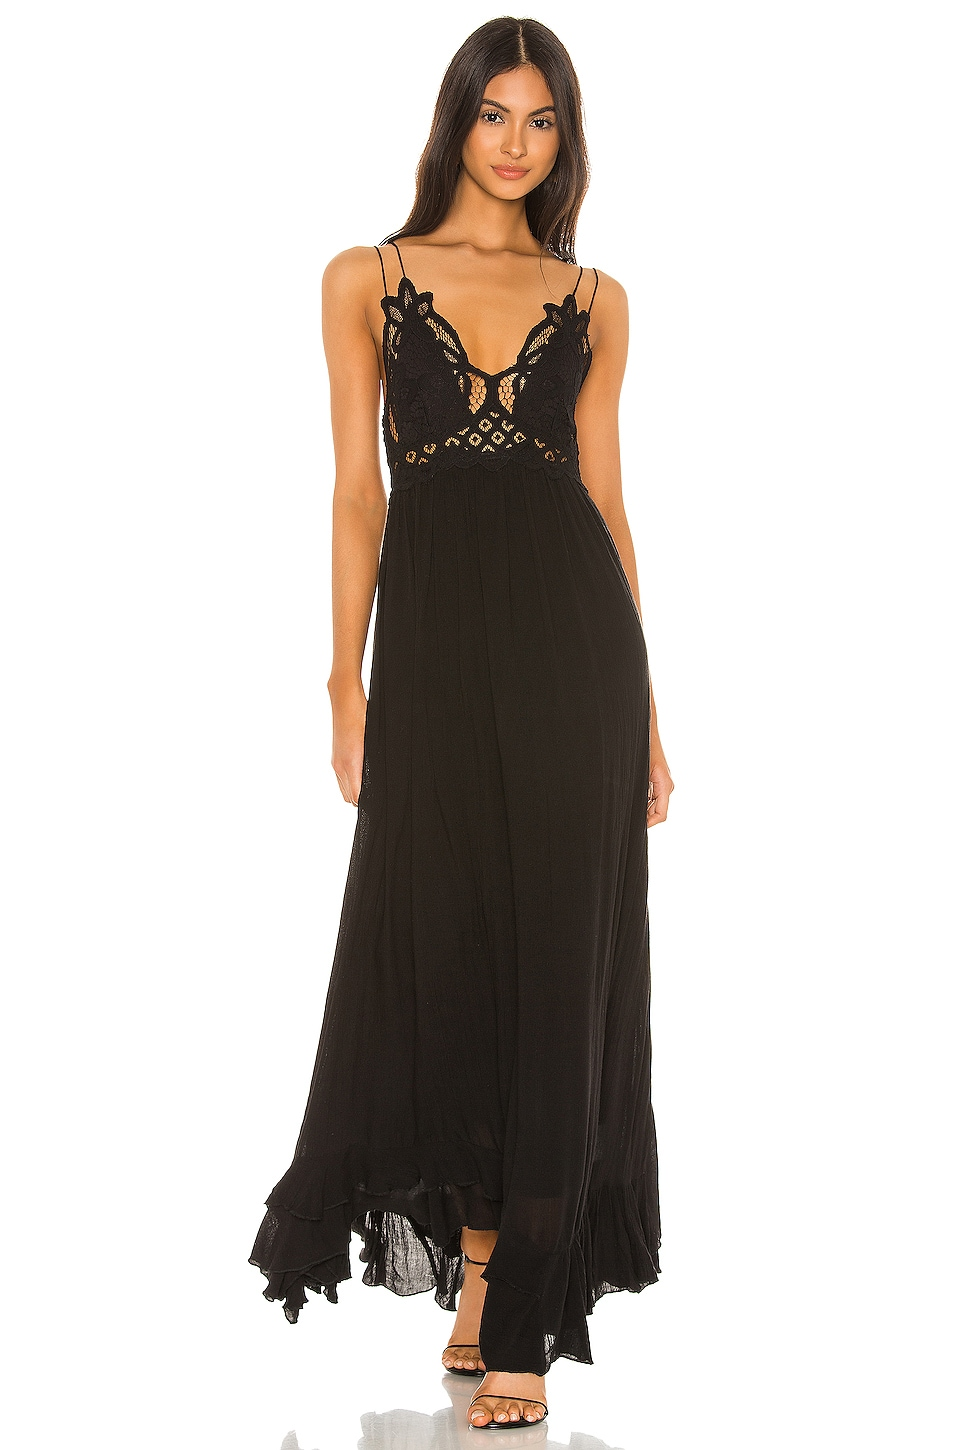 Free People Adella Maxi Dress in Black